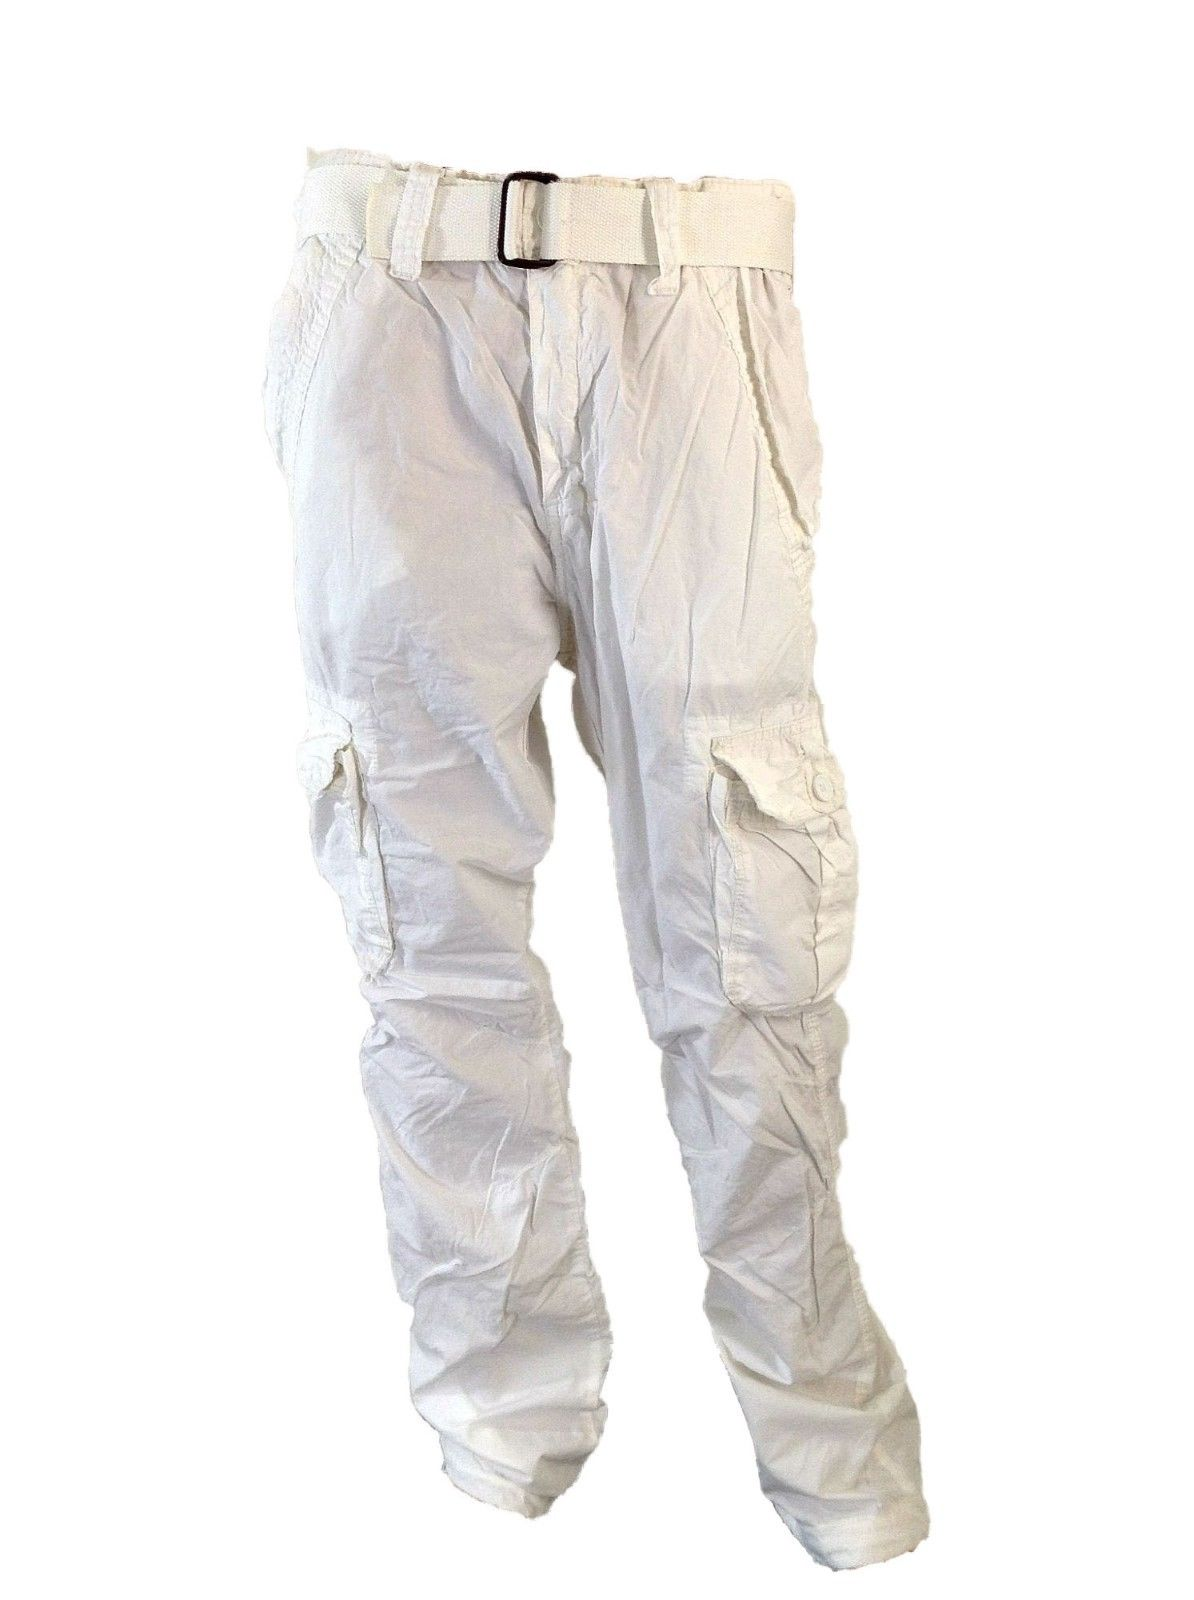 Long White Cargo Pants For Men - Buy White Cargo Pants For Men ...